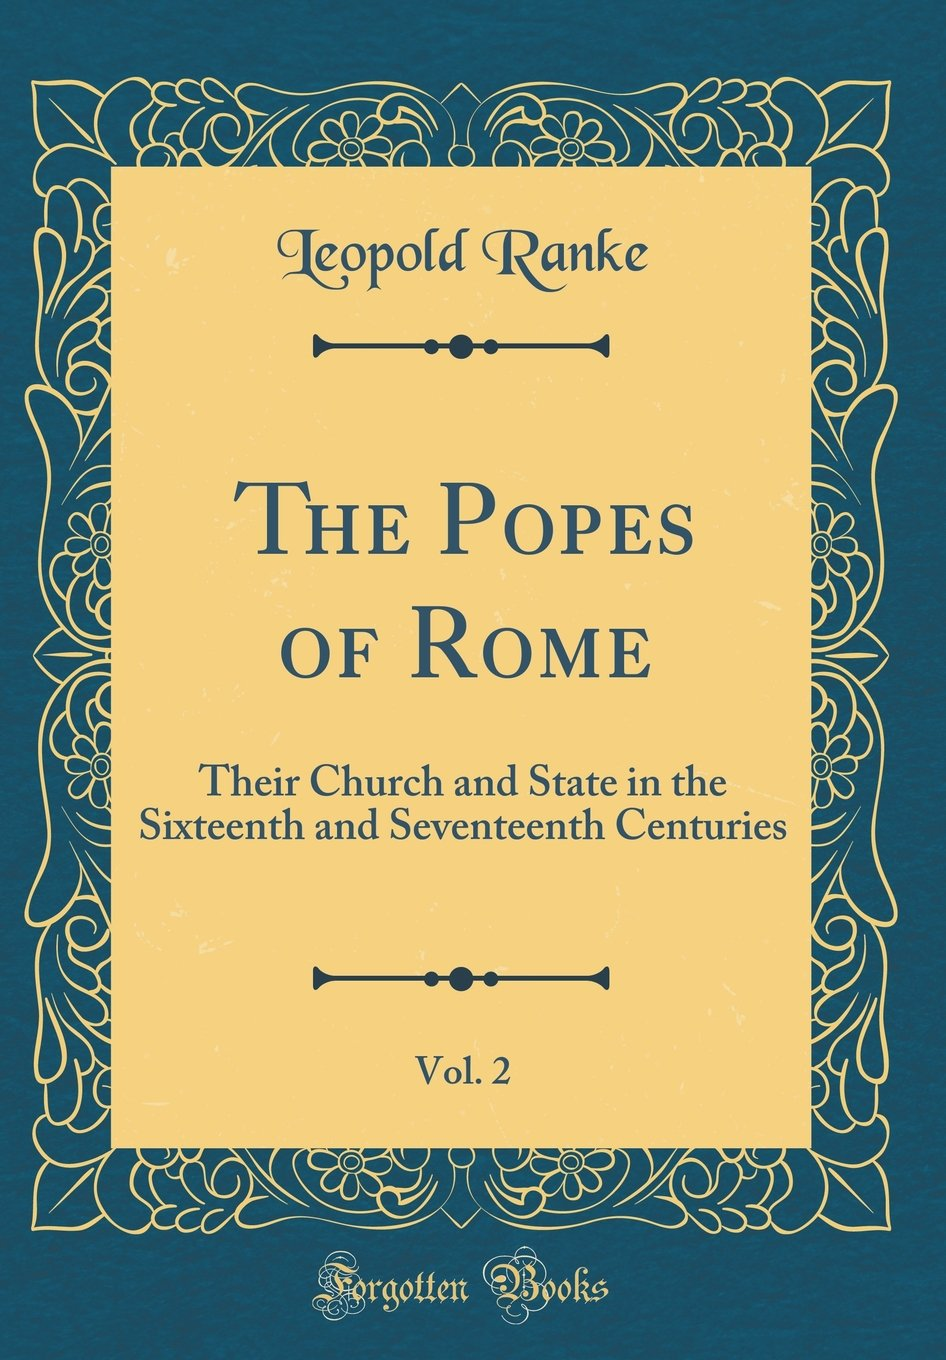 The Popes of Rome, Vol. 2: Their Church and State in the Sixteenth and Seventeenth Centuries (Classic Reprint) pdf epub